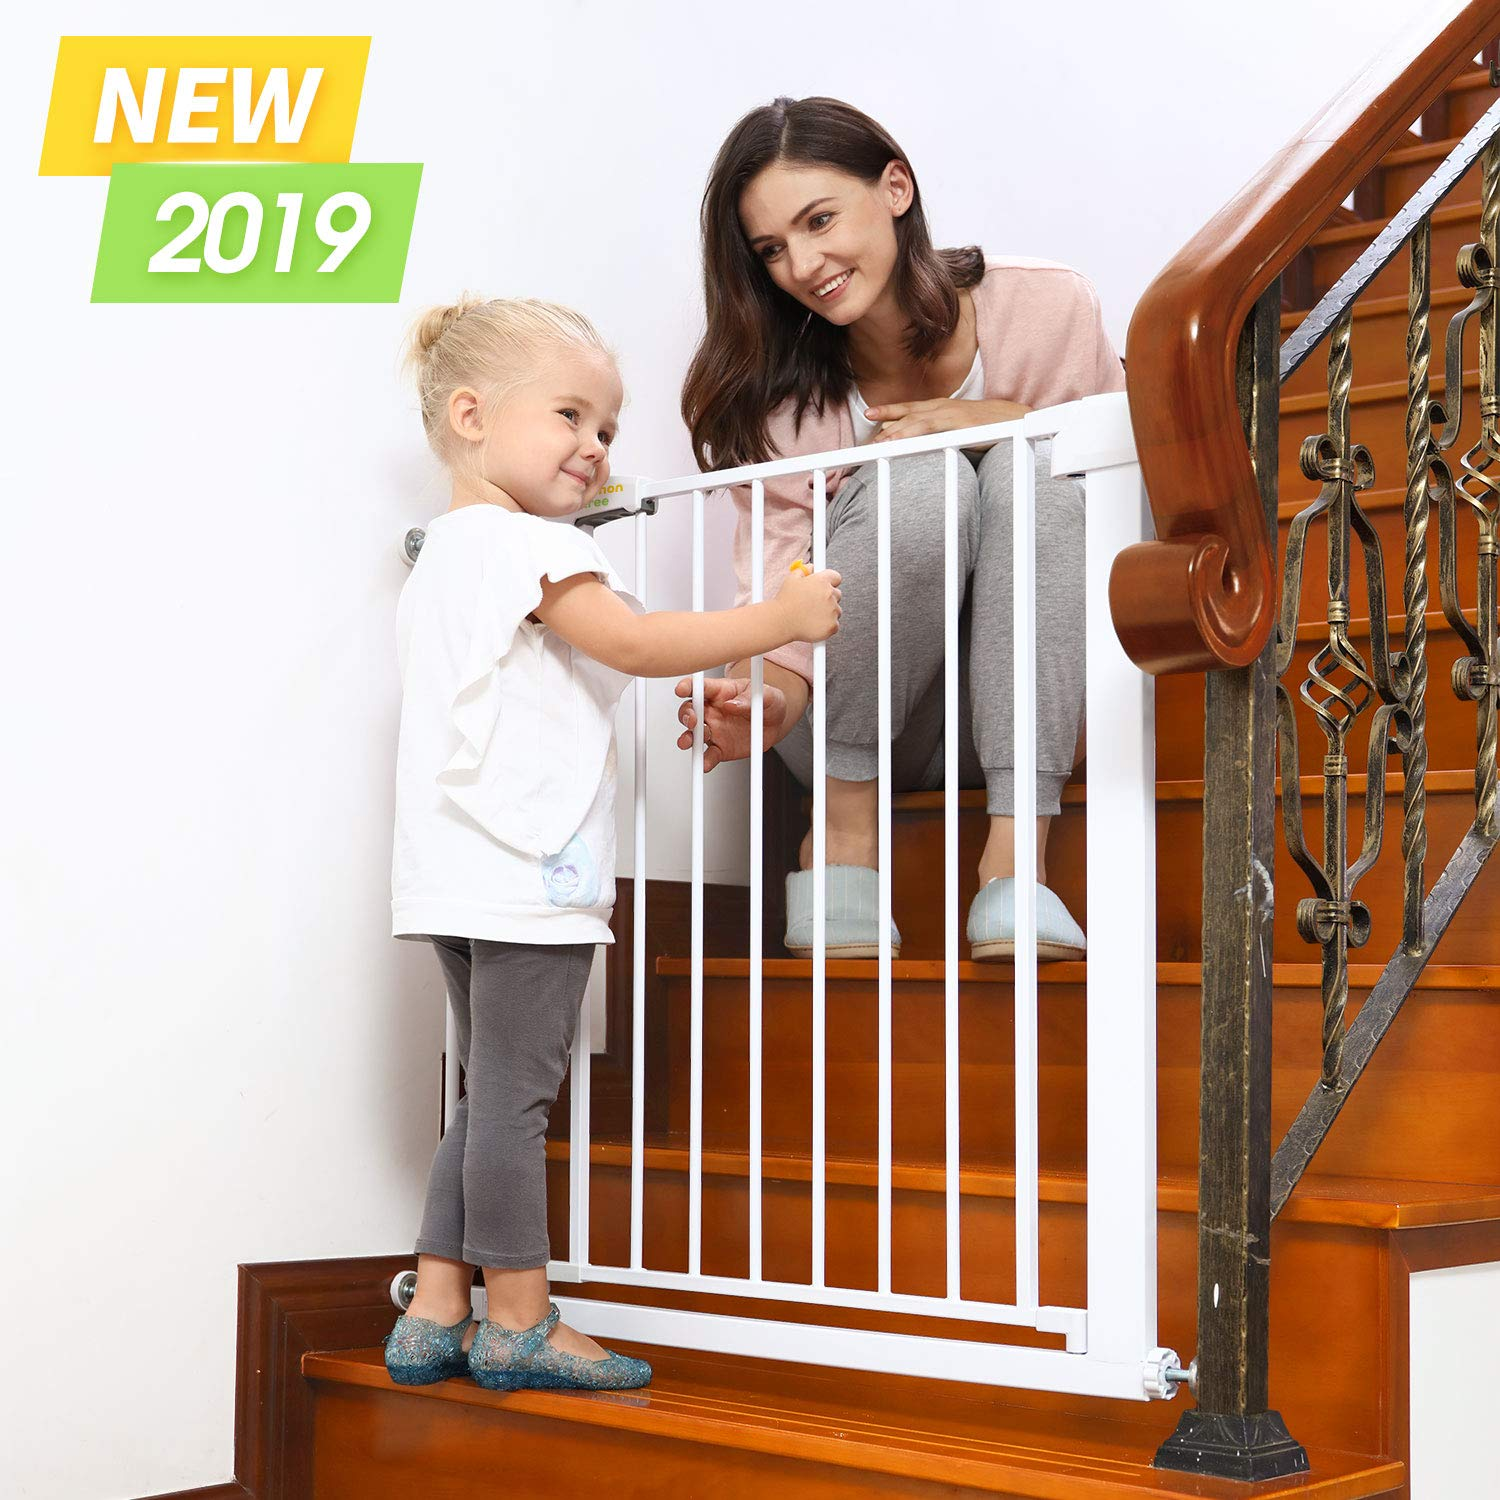 Baby Gates for Stairs and Doorways Dog Gates for The House, 30-40.5 inches - Indoor Safety Gates for Kids or Pets, Walk Through Extra Wide Tall Metal Gate Pressure Mount Auto Close by Lemon tree